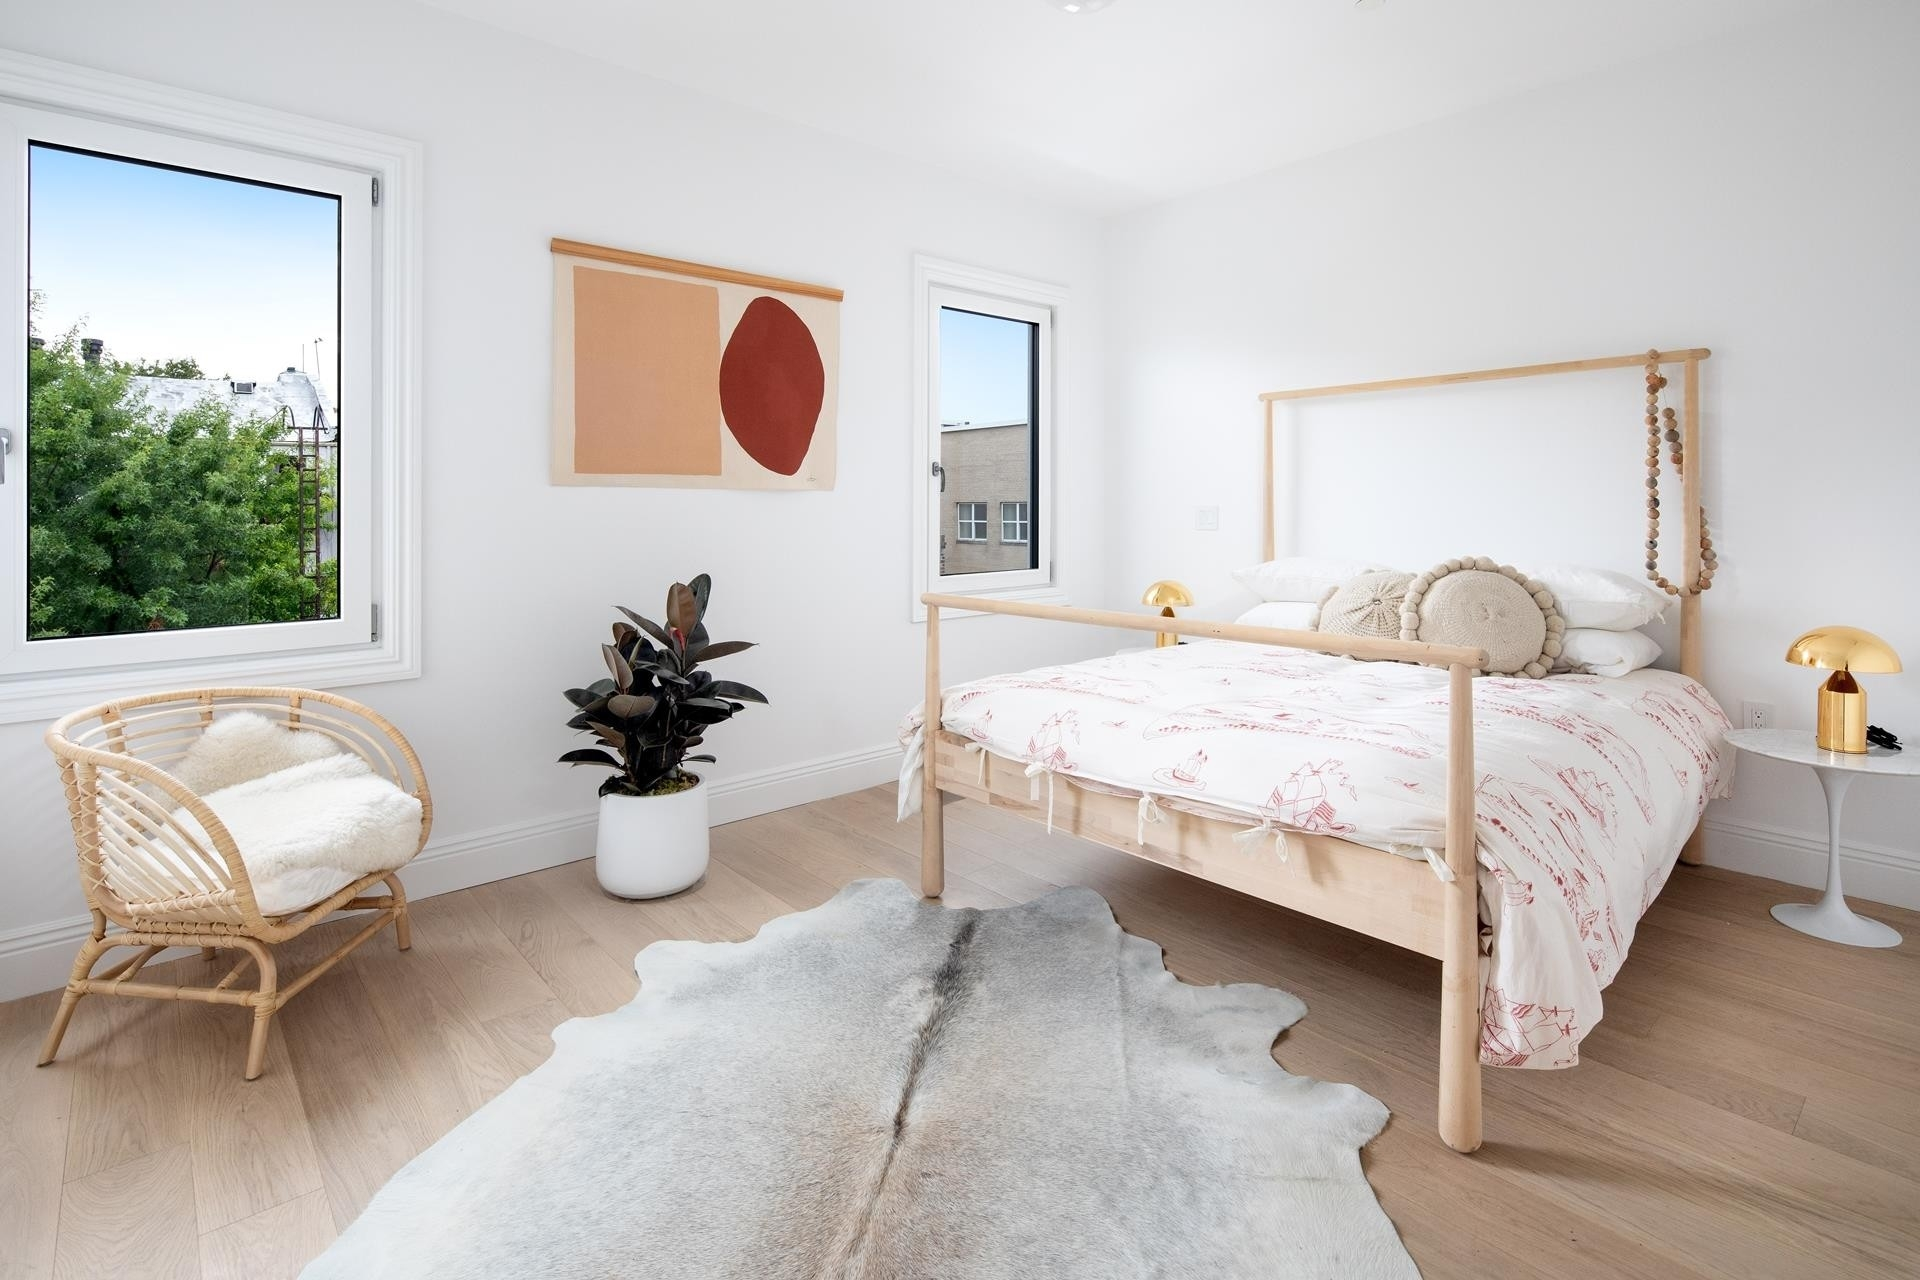 13. Single Family Townhouse for Sale at Carroll Gardens, Brooklyn, NY 11231